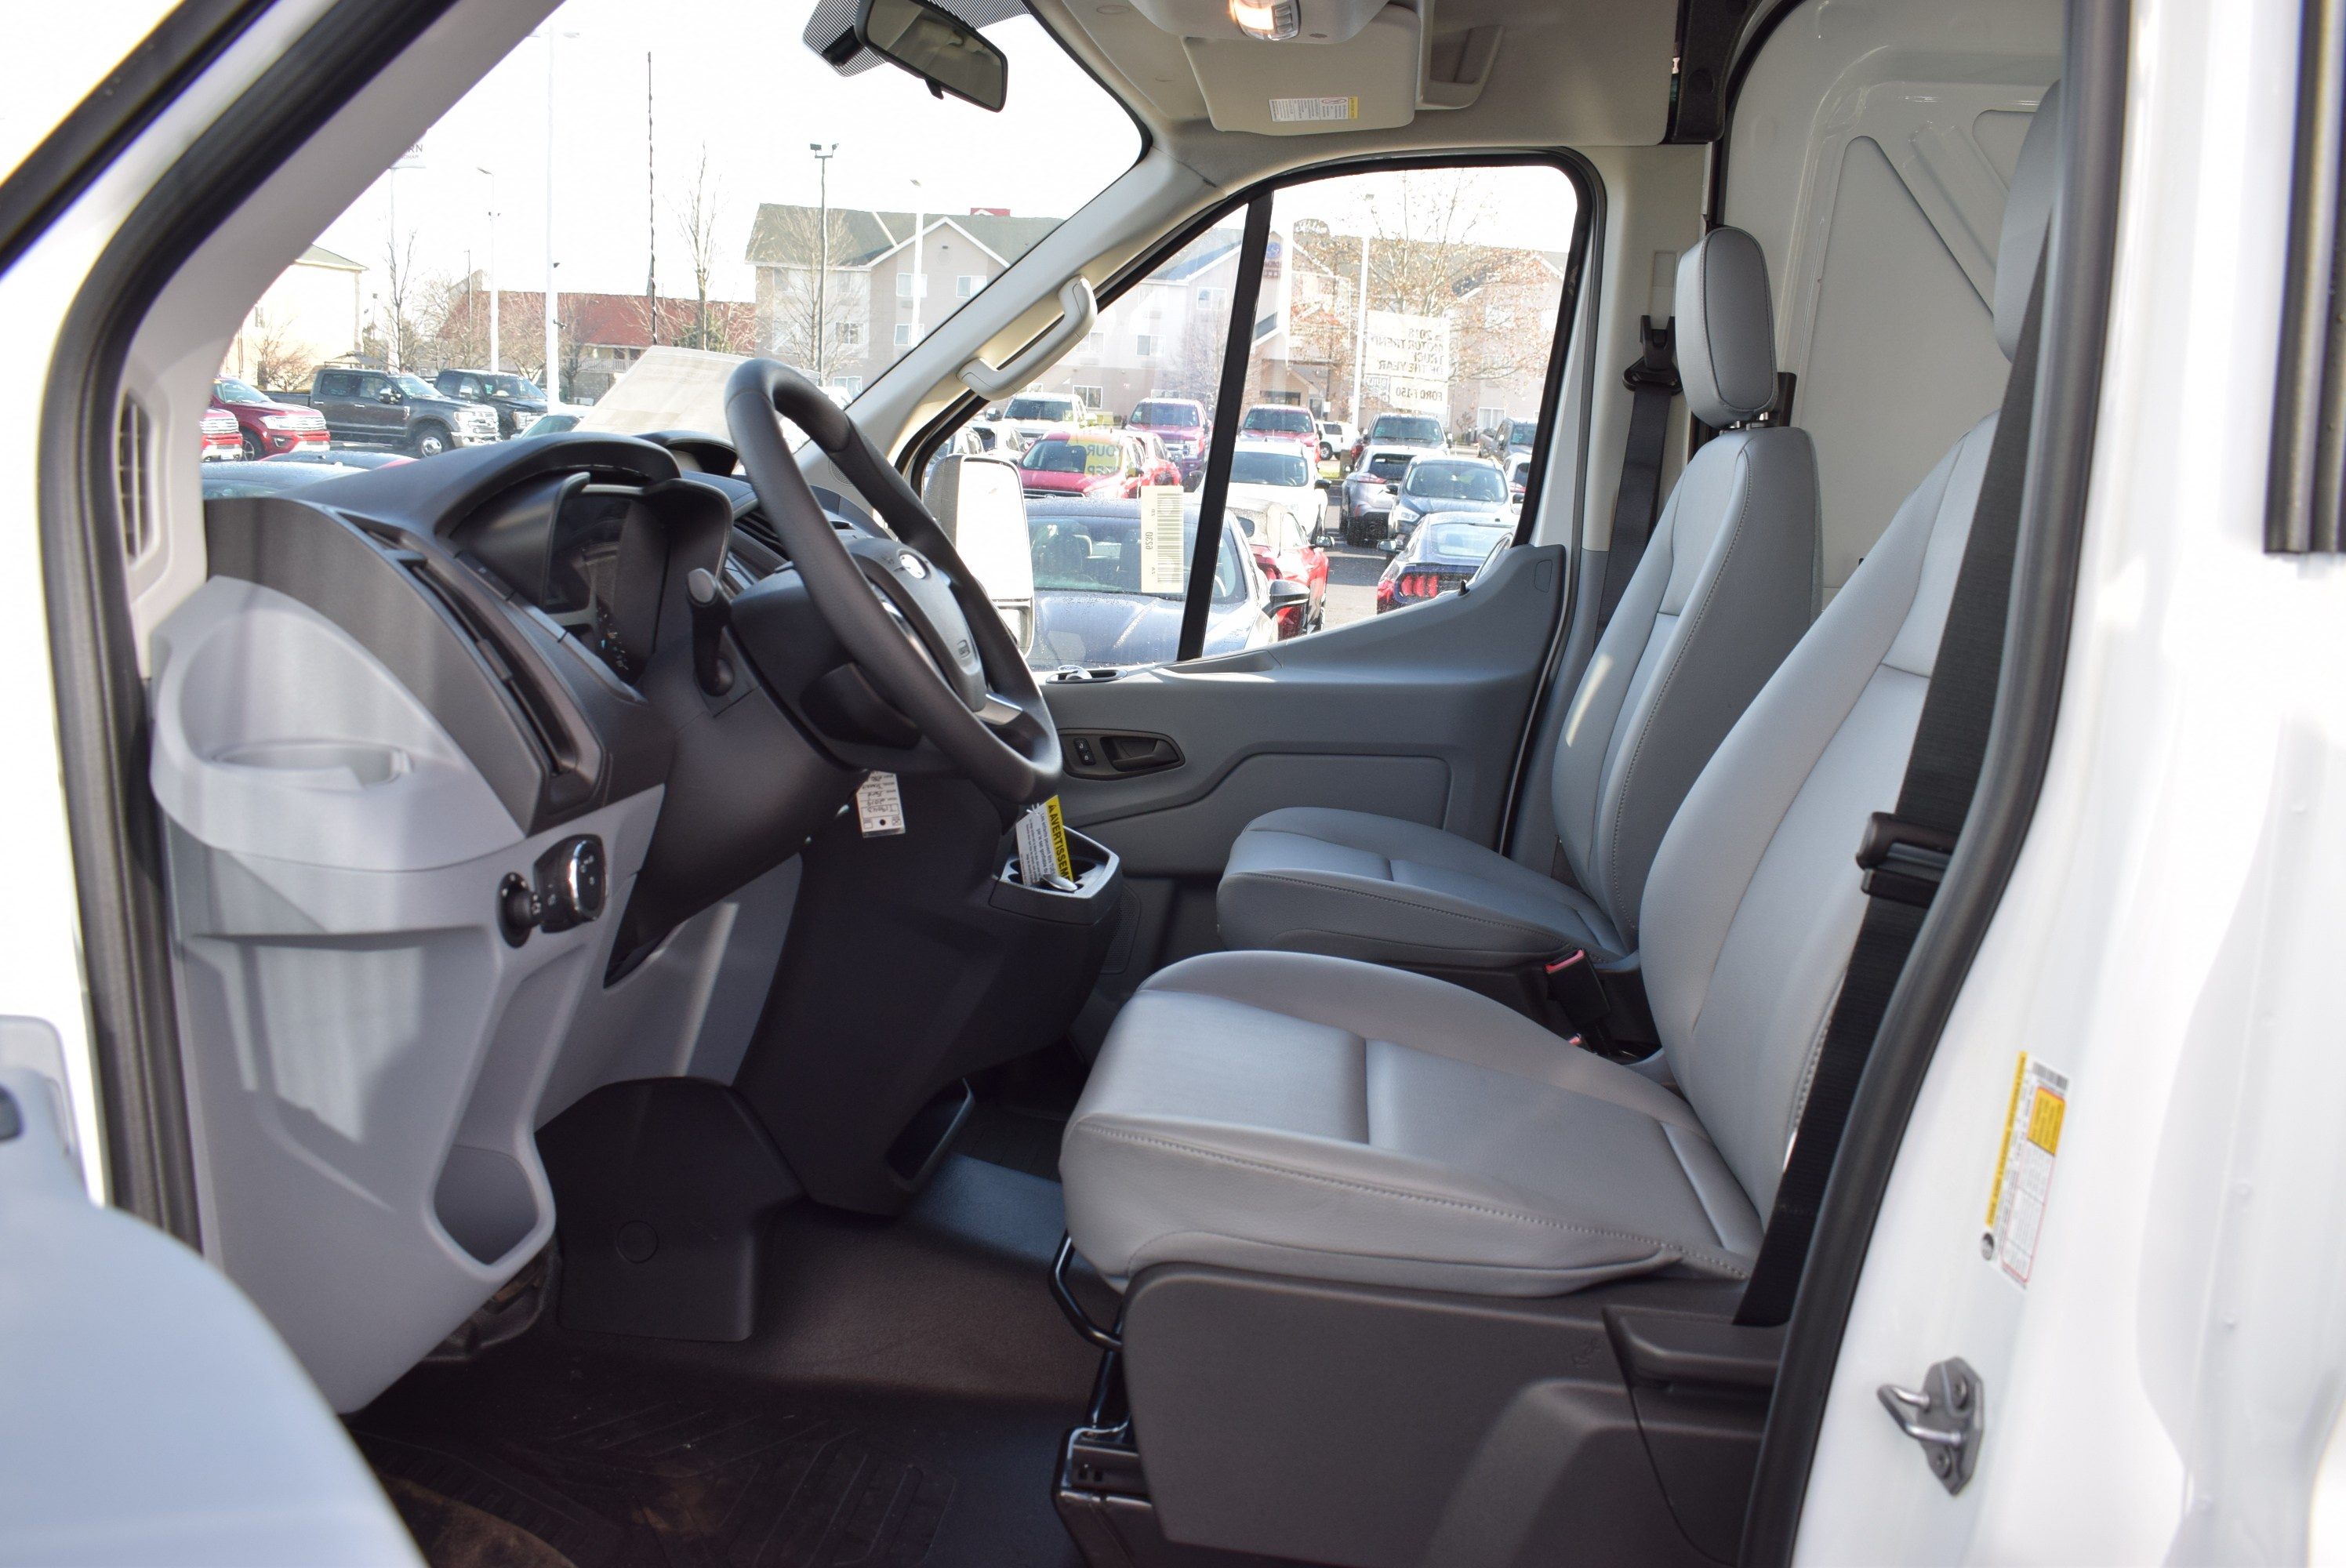 2019 Transit 150 Med Roof 4x2,  Empty Cargo Van #T19085 - photo 17